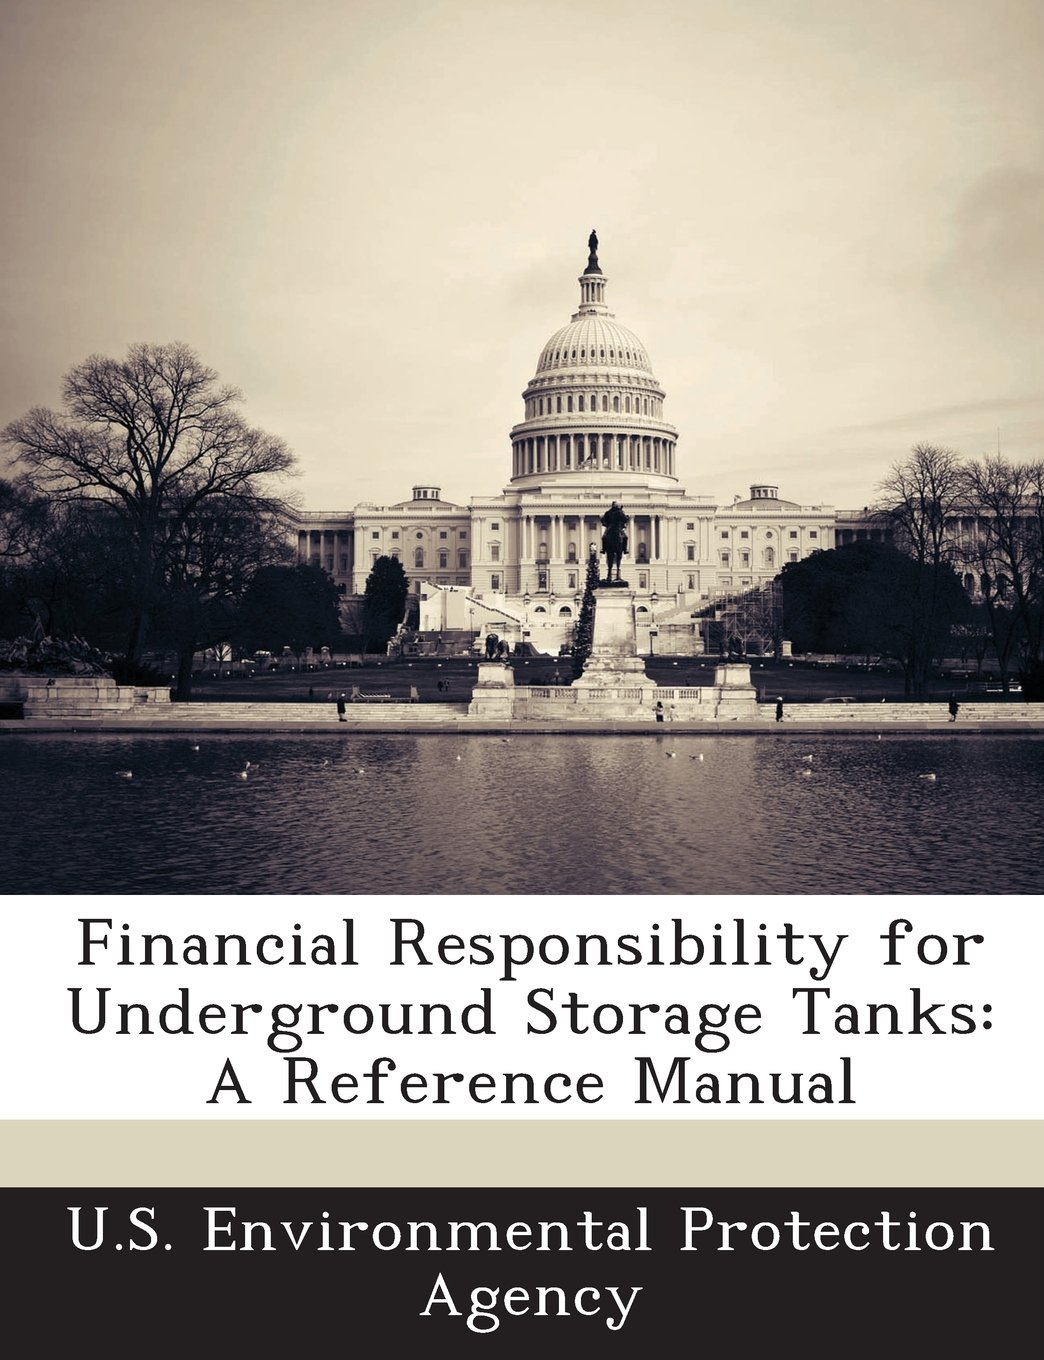 Financial Responsibility for Underground Storage Tanks: A Reference Manual pdf